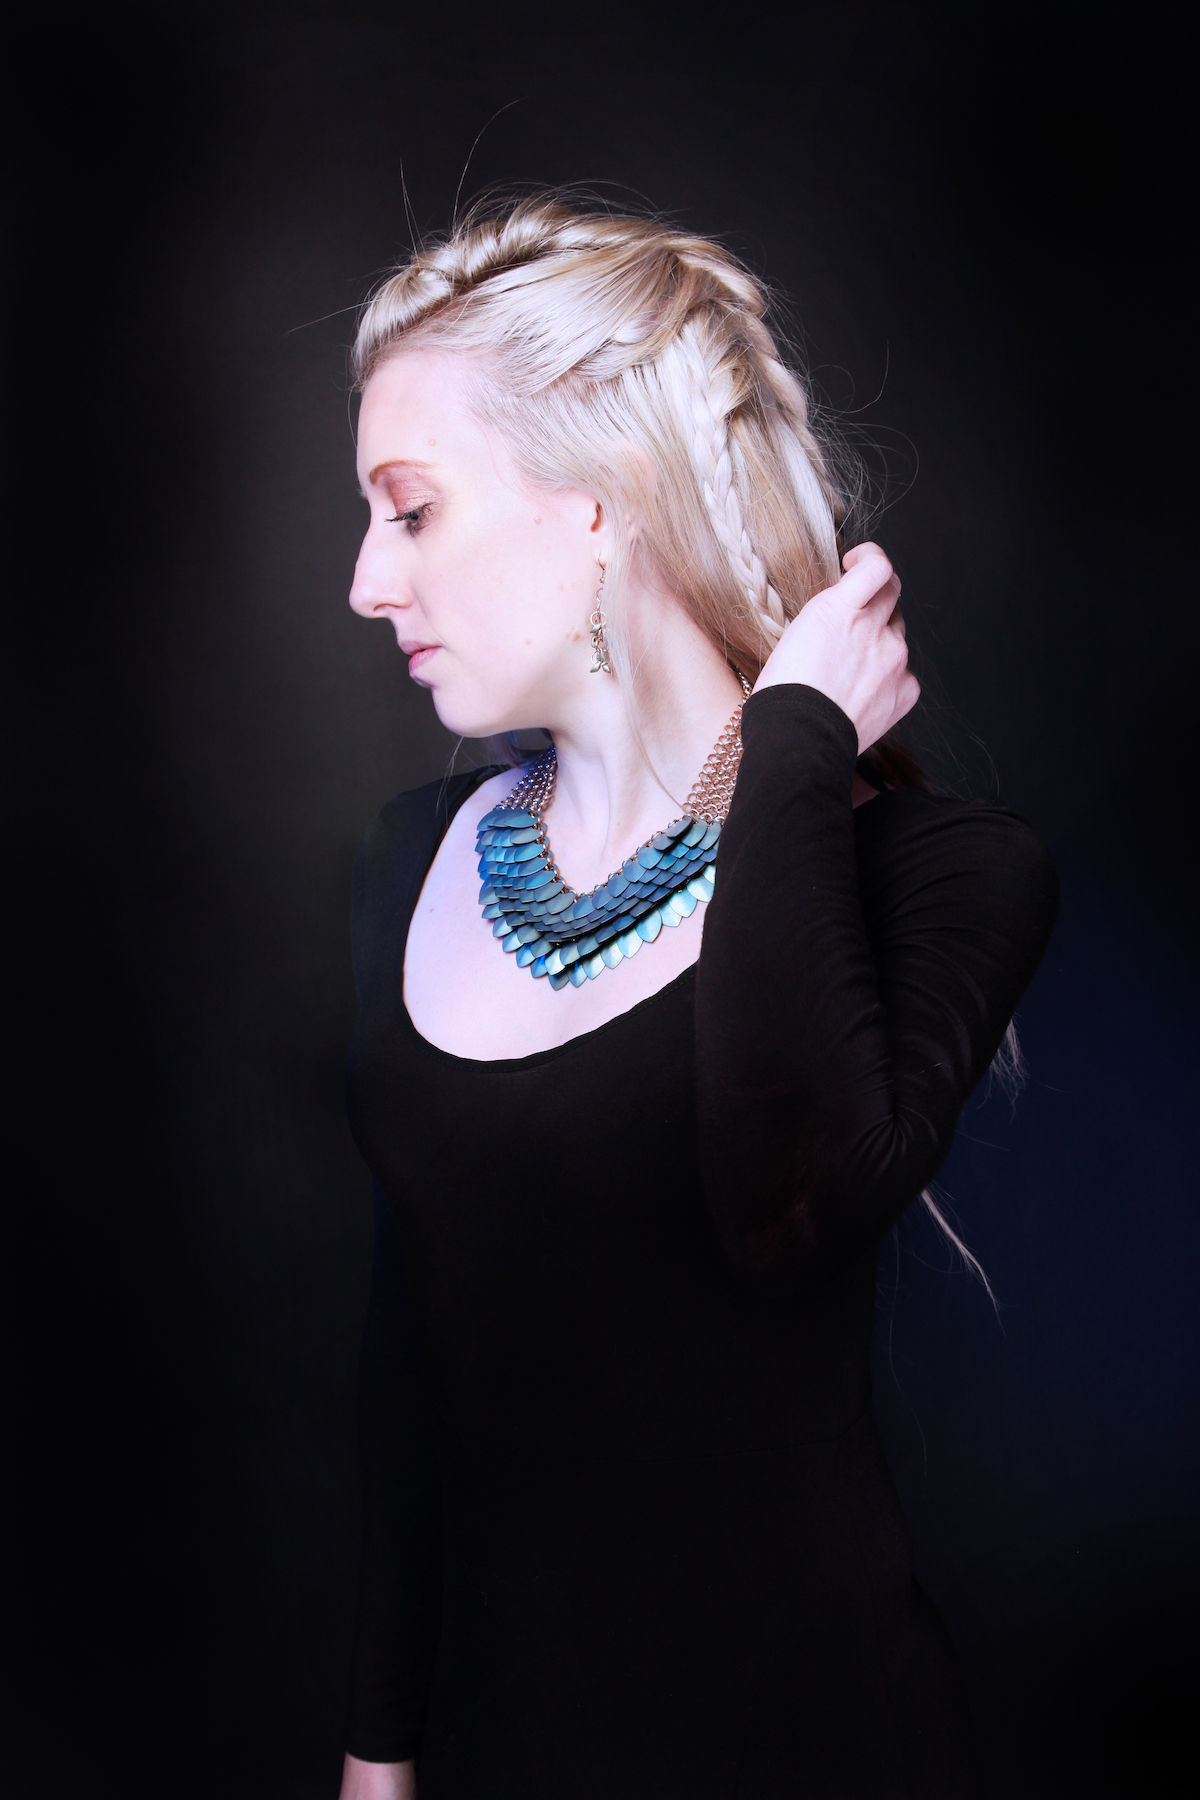 Scalemaille designer Sally of It Is Known wearing iridescent blue and green statement necklace